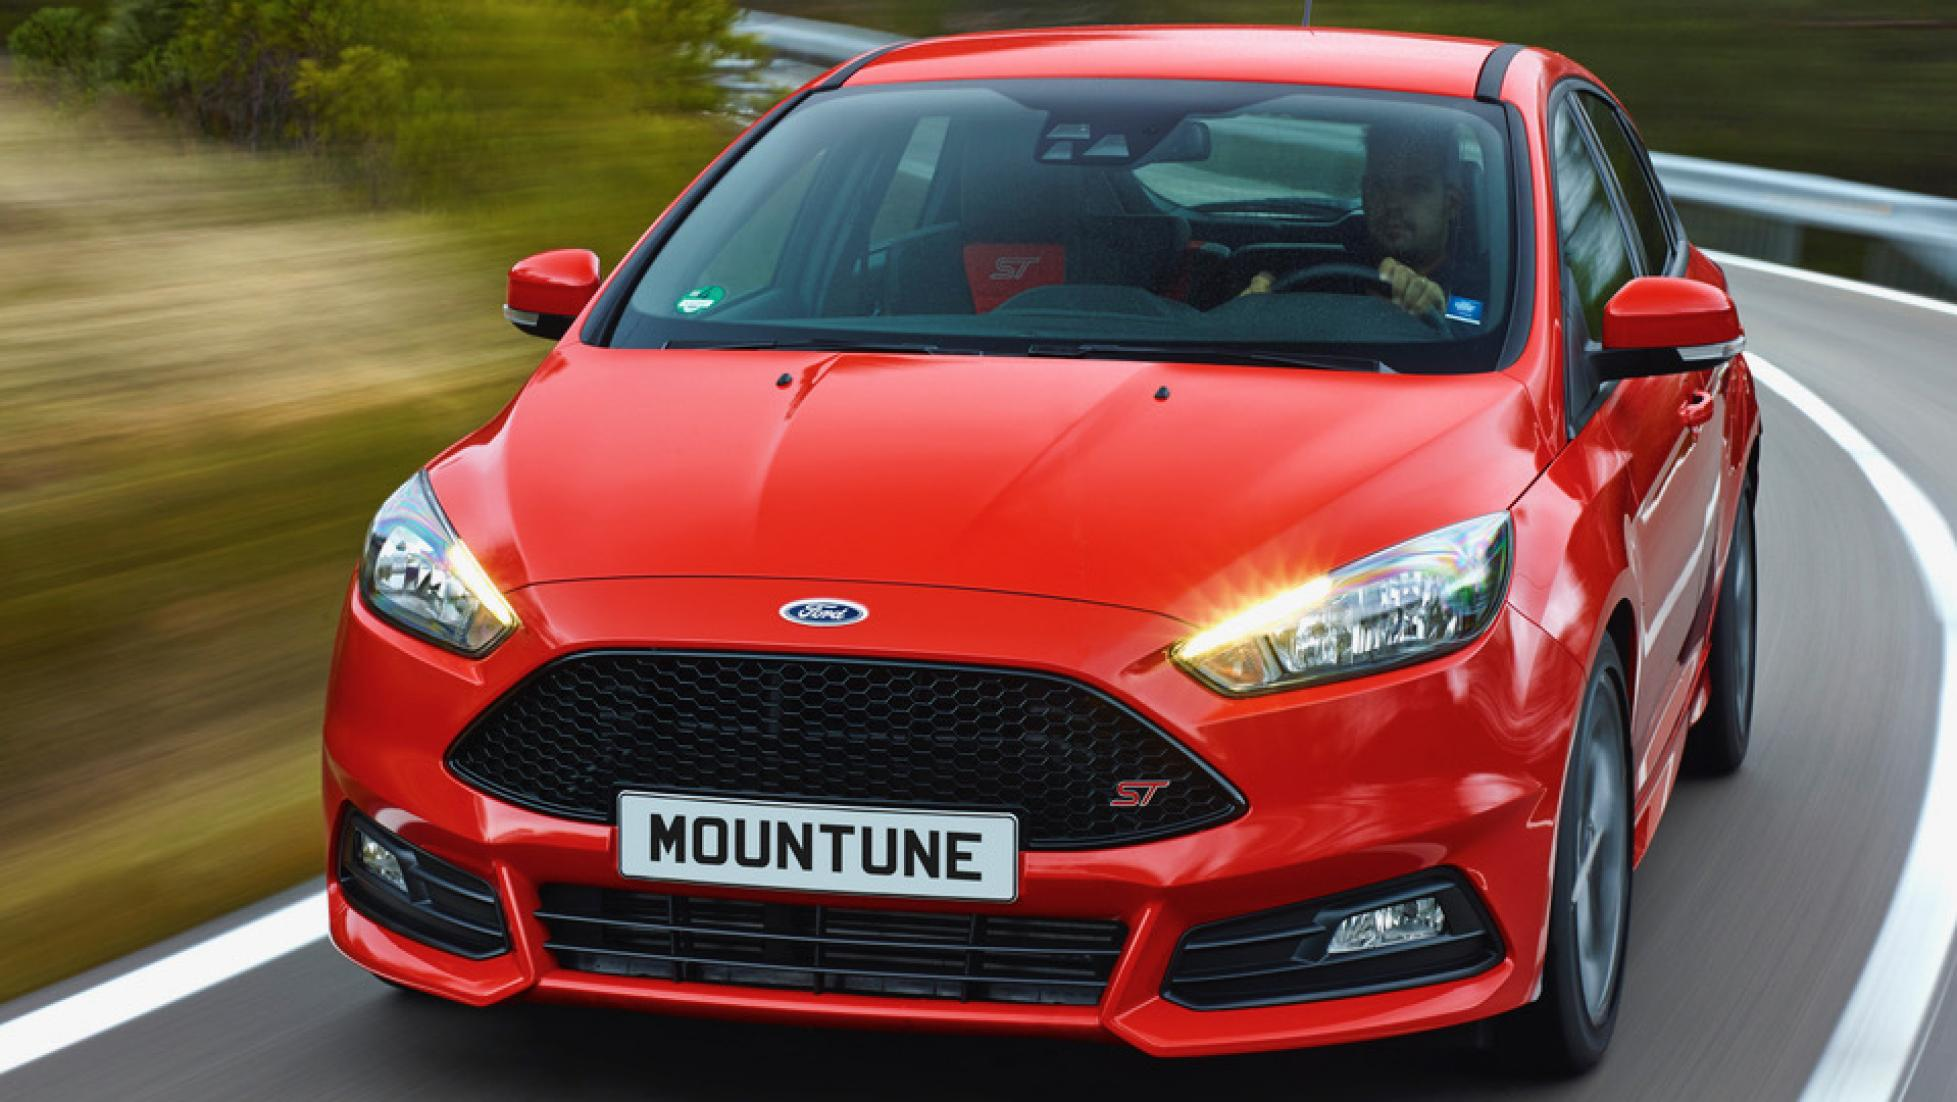 5 photos. Mountune m460D power upgrade for Ford Focus ST diesel manual ...